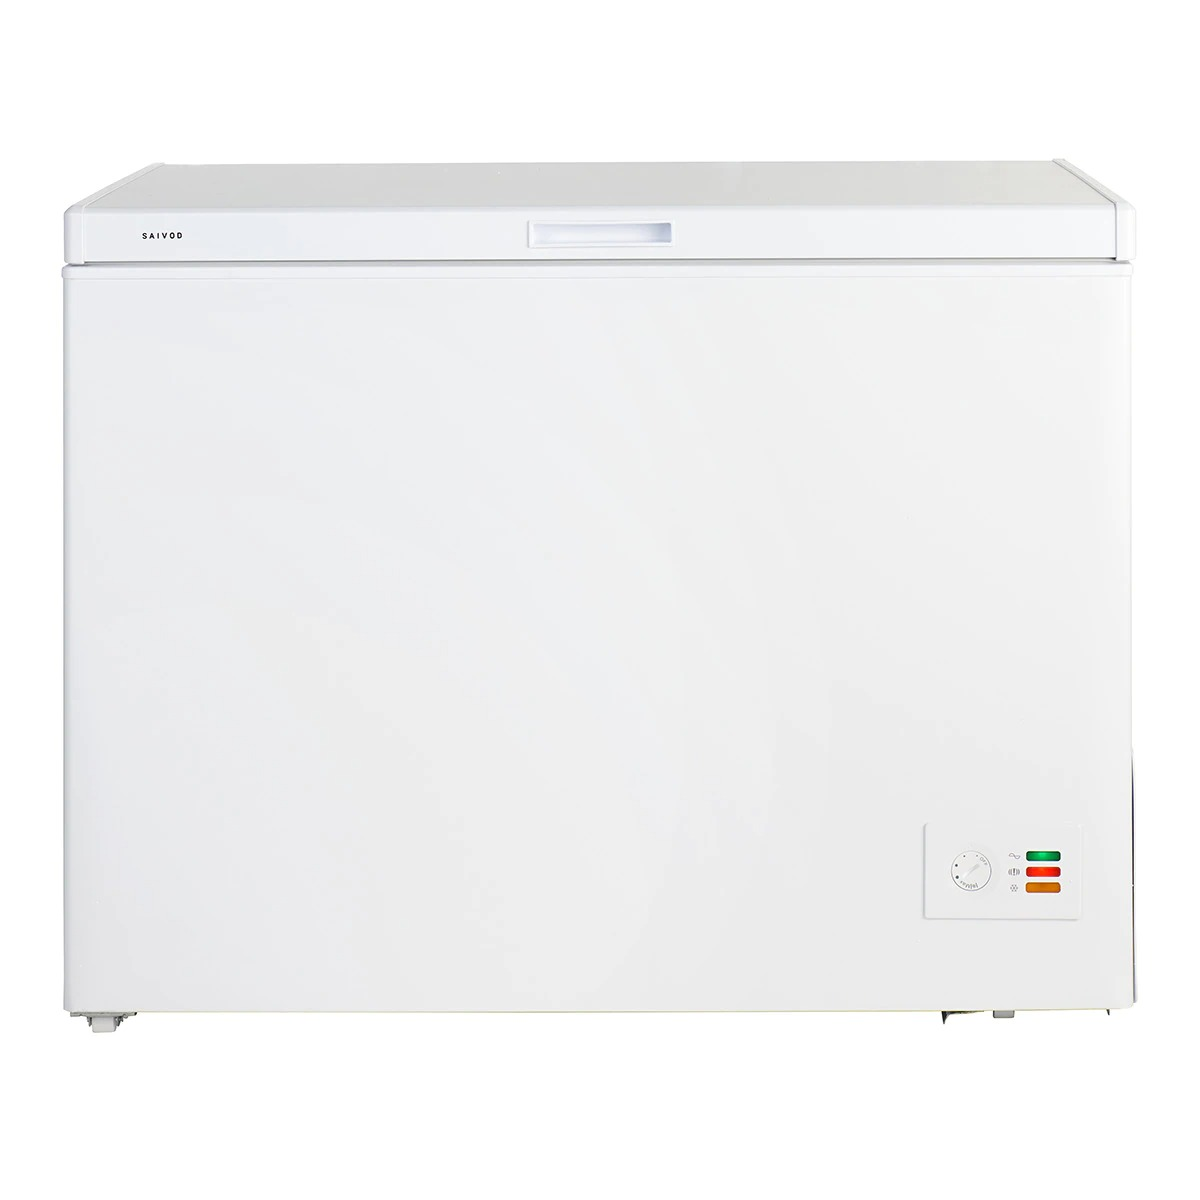 Saivod AT1106N Chest Freezer with 298 liter capacity